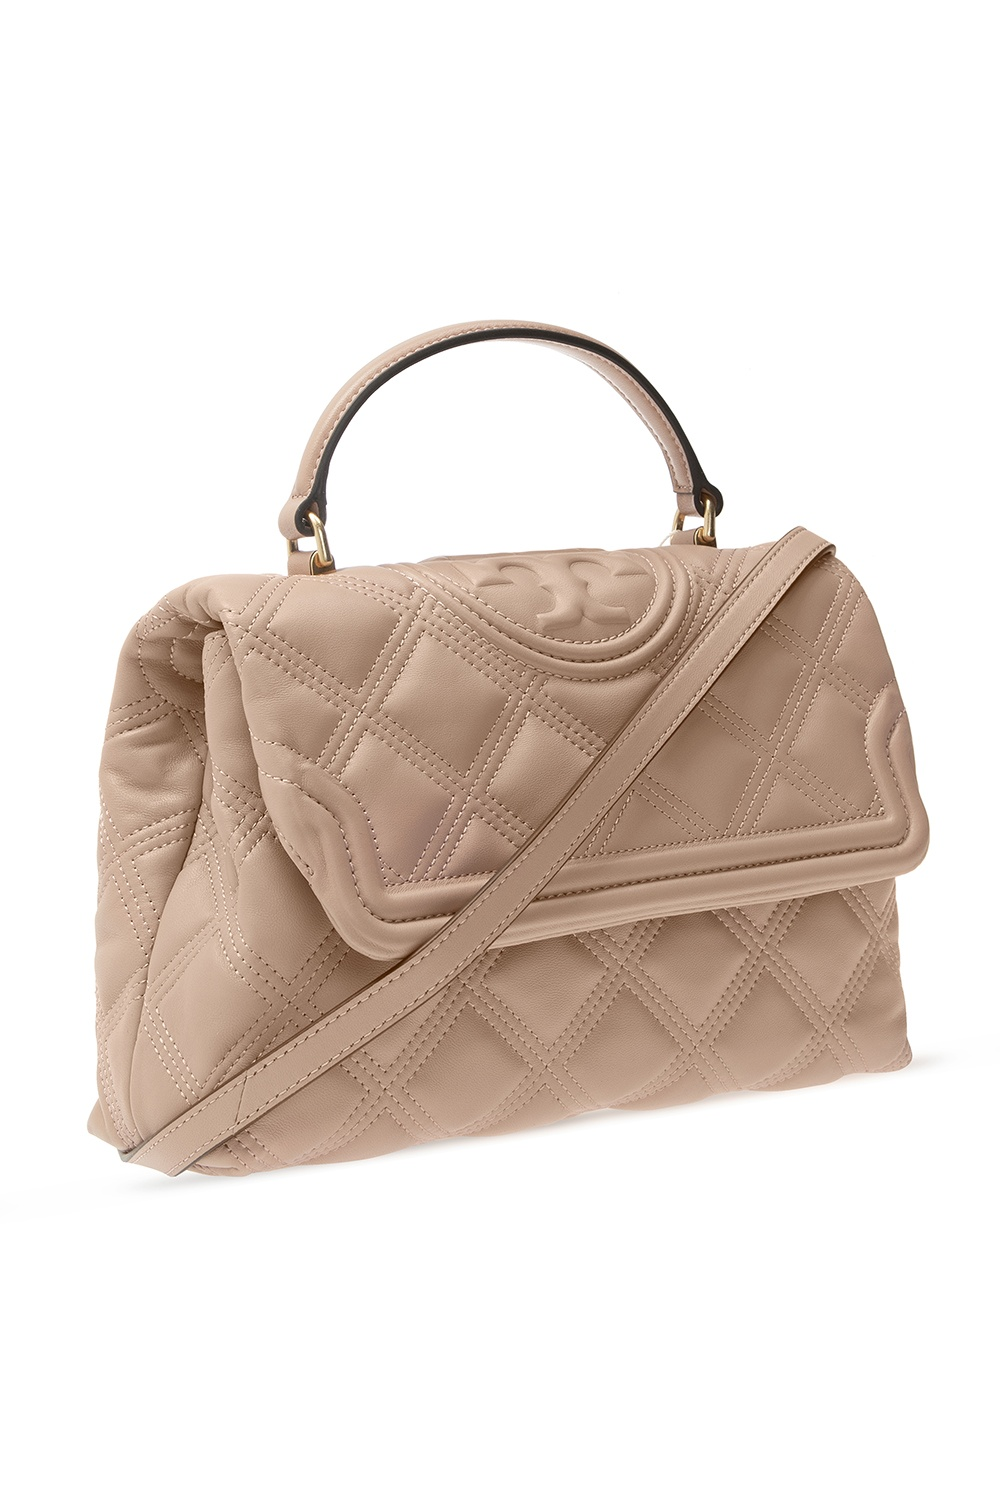 Tory Burch 'Fleming' shoulder bag